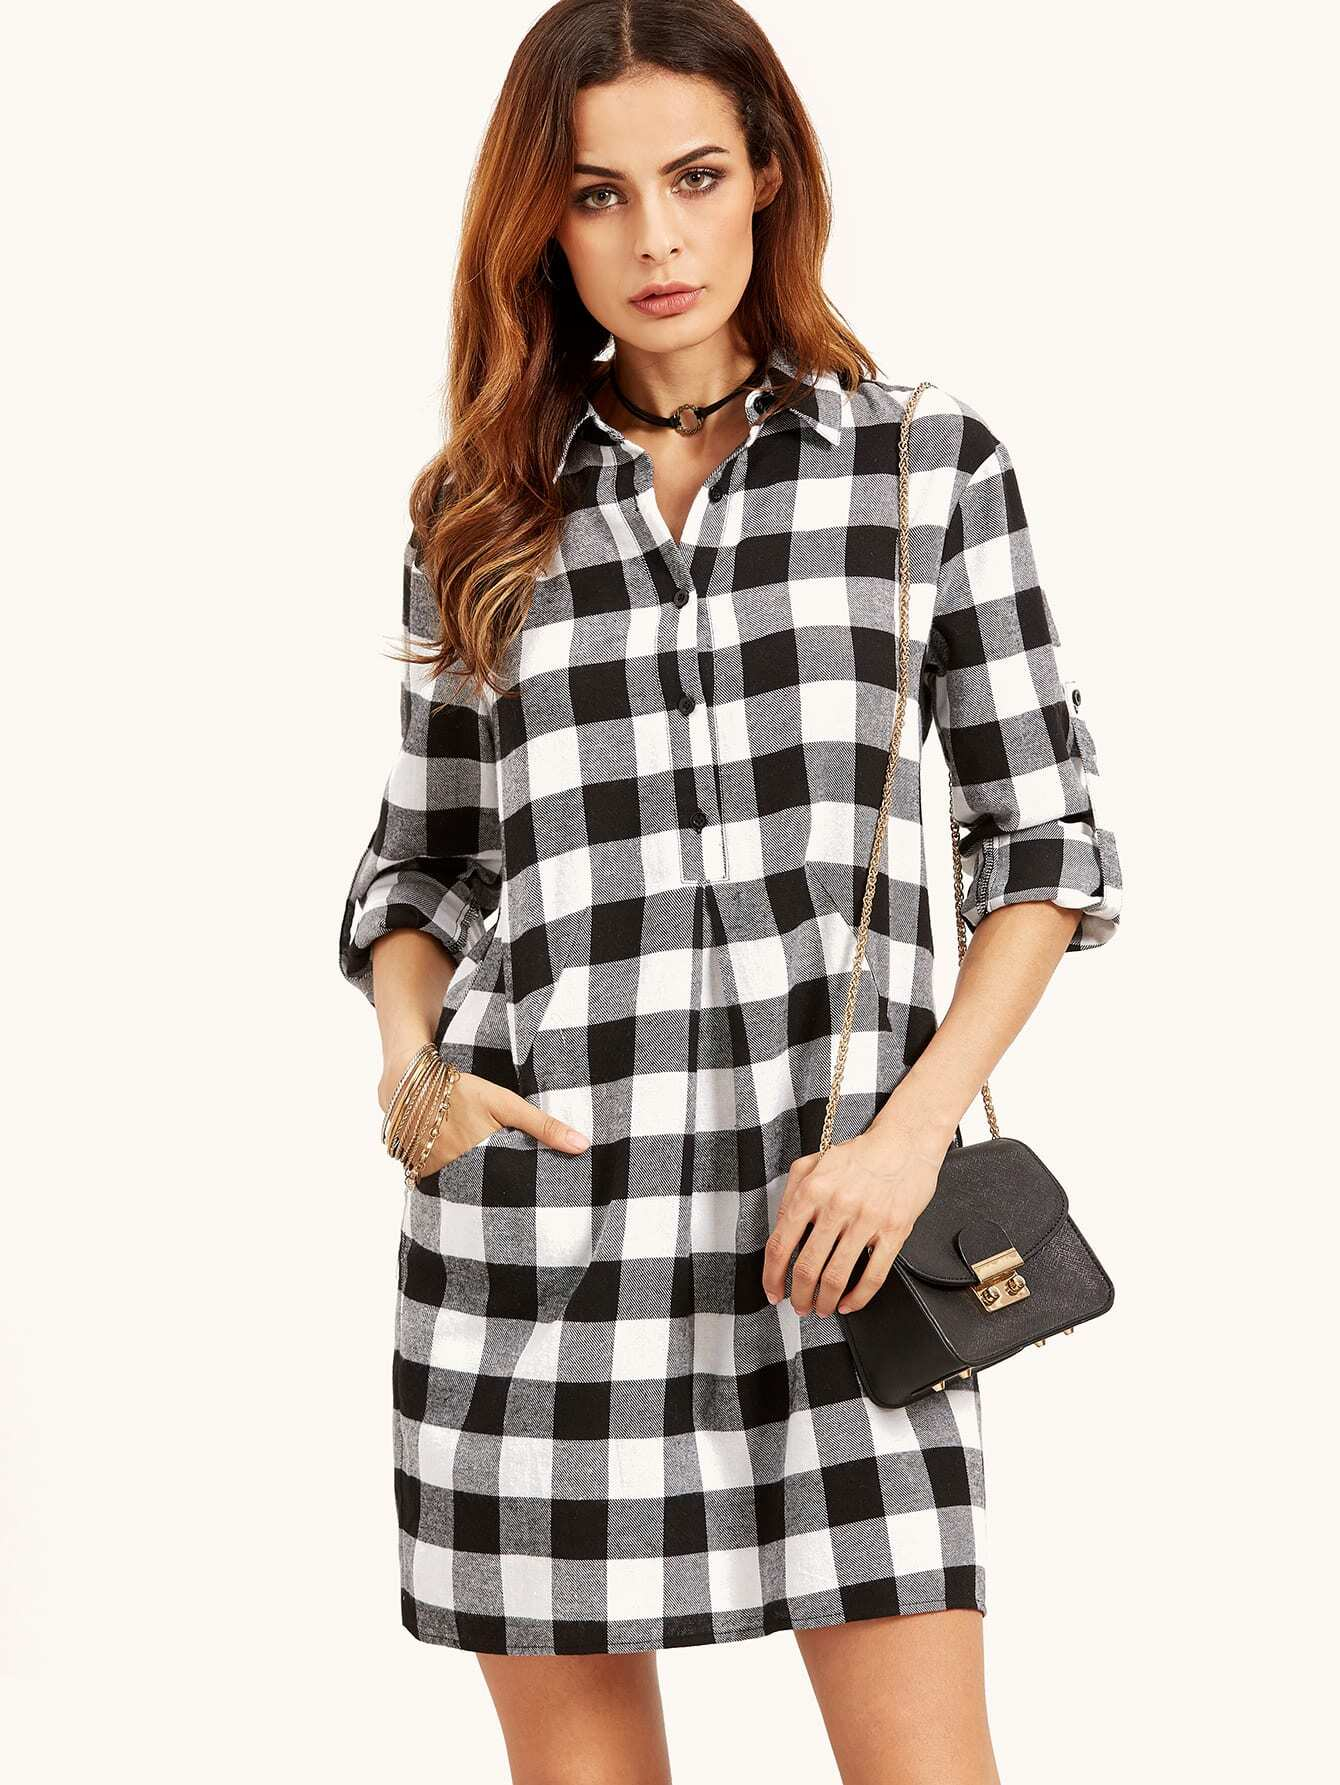 Black And White Gingham Womens Shirt